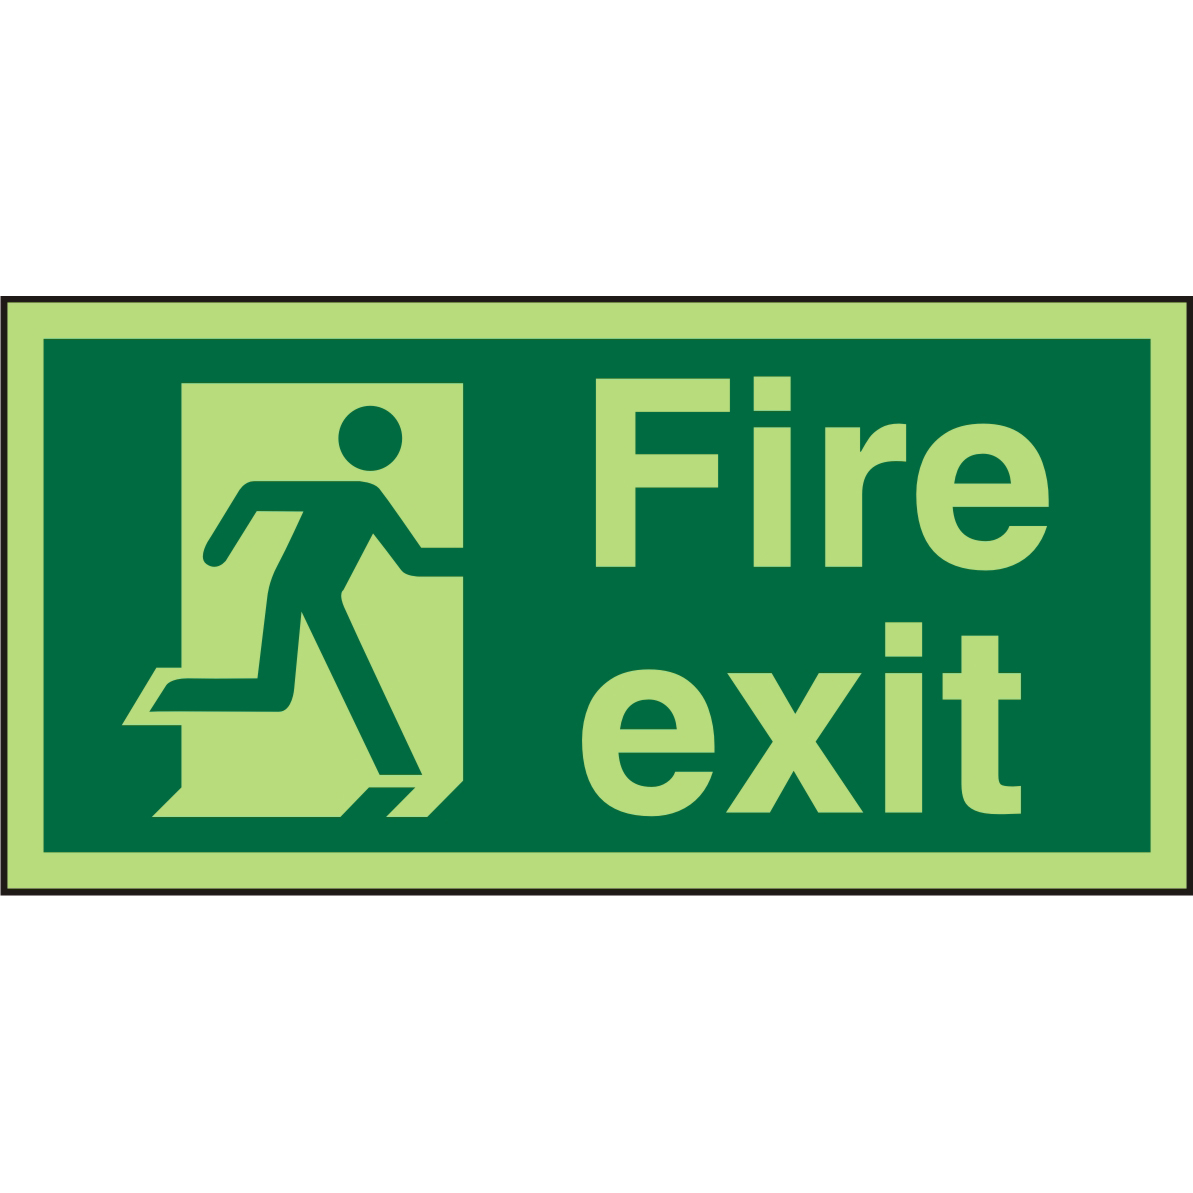 Photolum Sign 300x150 Plastic Fire Exit Man Running Right Ref PSP318SRP300x150 *Up to 10 Day Leadtime*